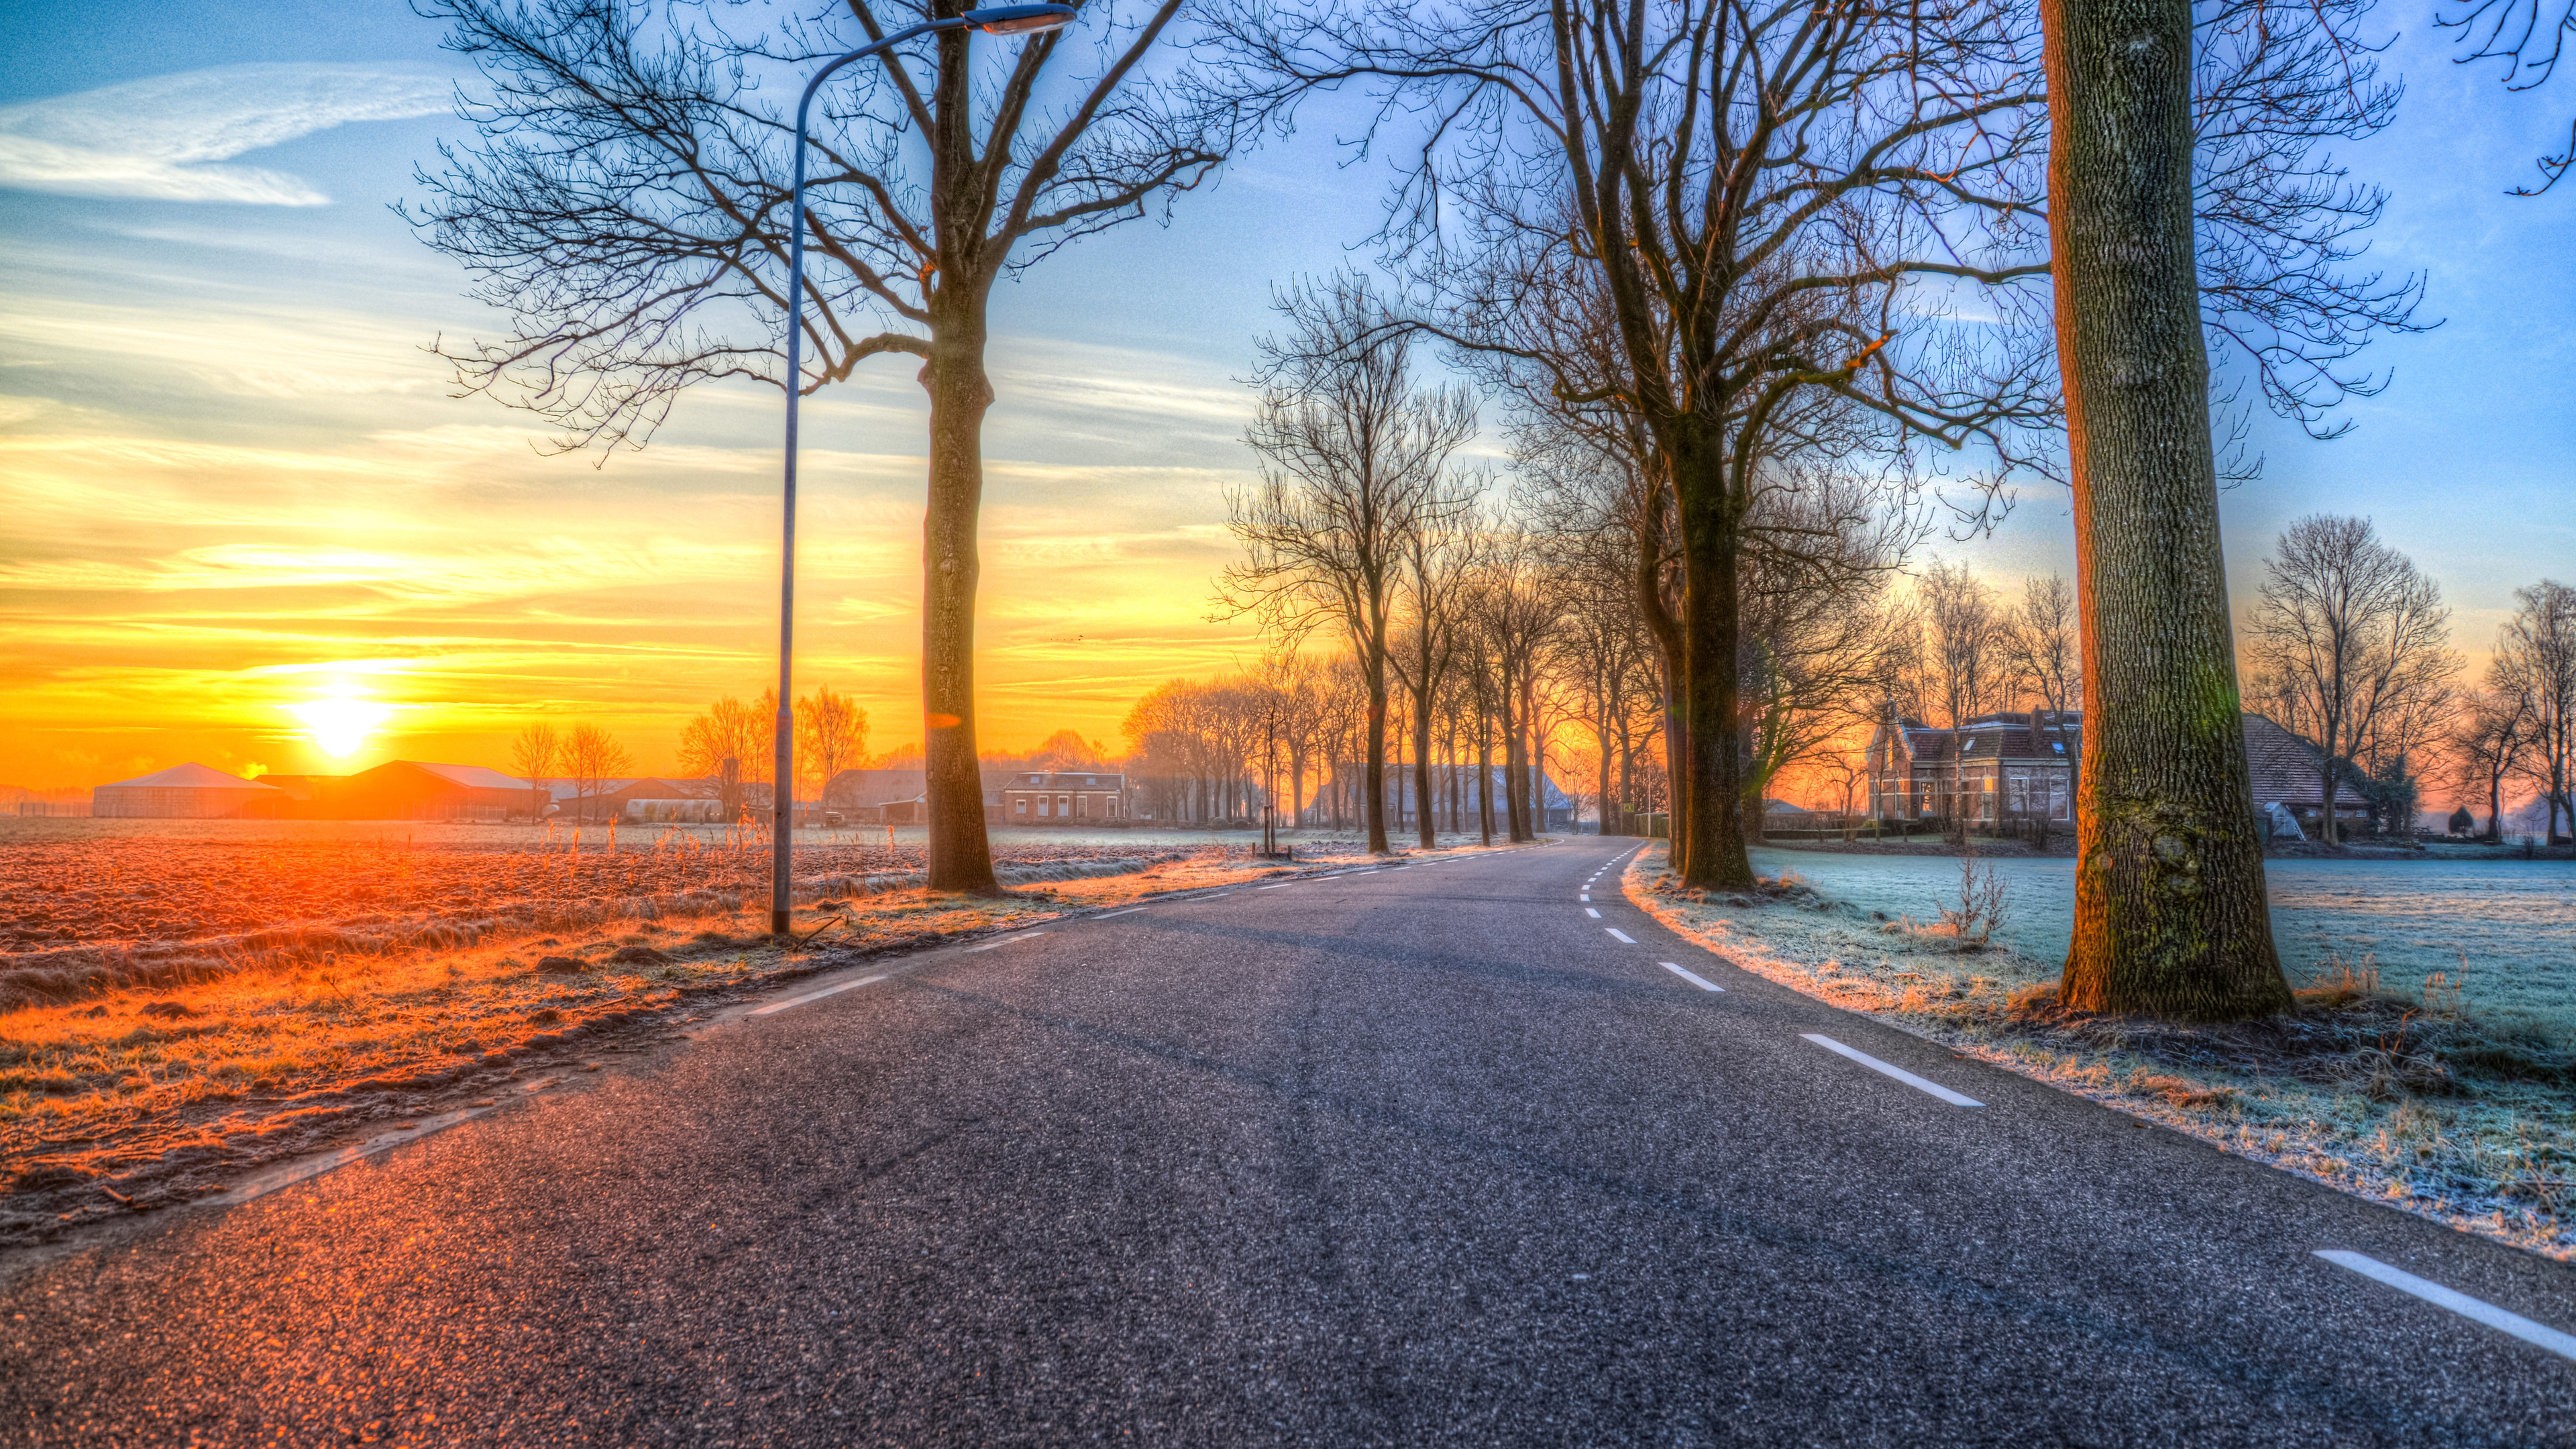 trees on road both side morning outdoors nature 5k 1540136549 - Trees On Road Both Side Morning Outdoors Nature 5k - outdoors wallpapers, nature wallpapers, morning wallpapers, hd-wallpapers, evening wallpapers, dusk wallpapers, dawn wallpapers, 5k wallpapers, 4k-wallpapers